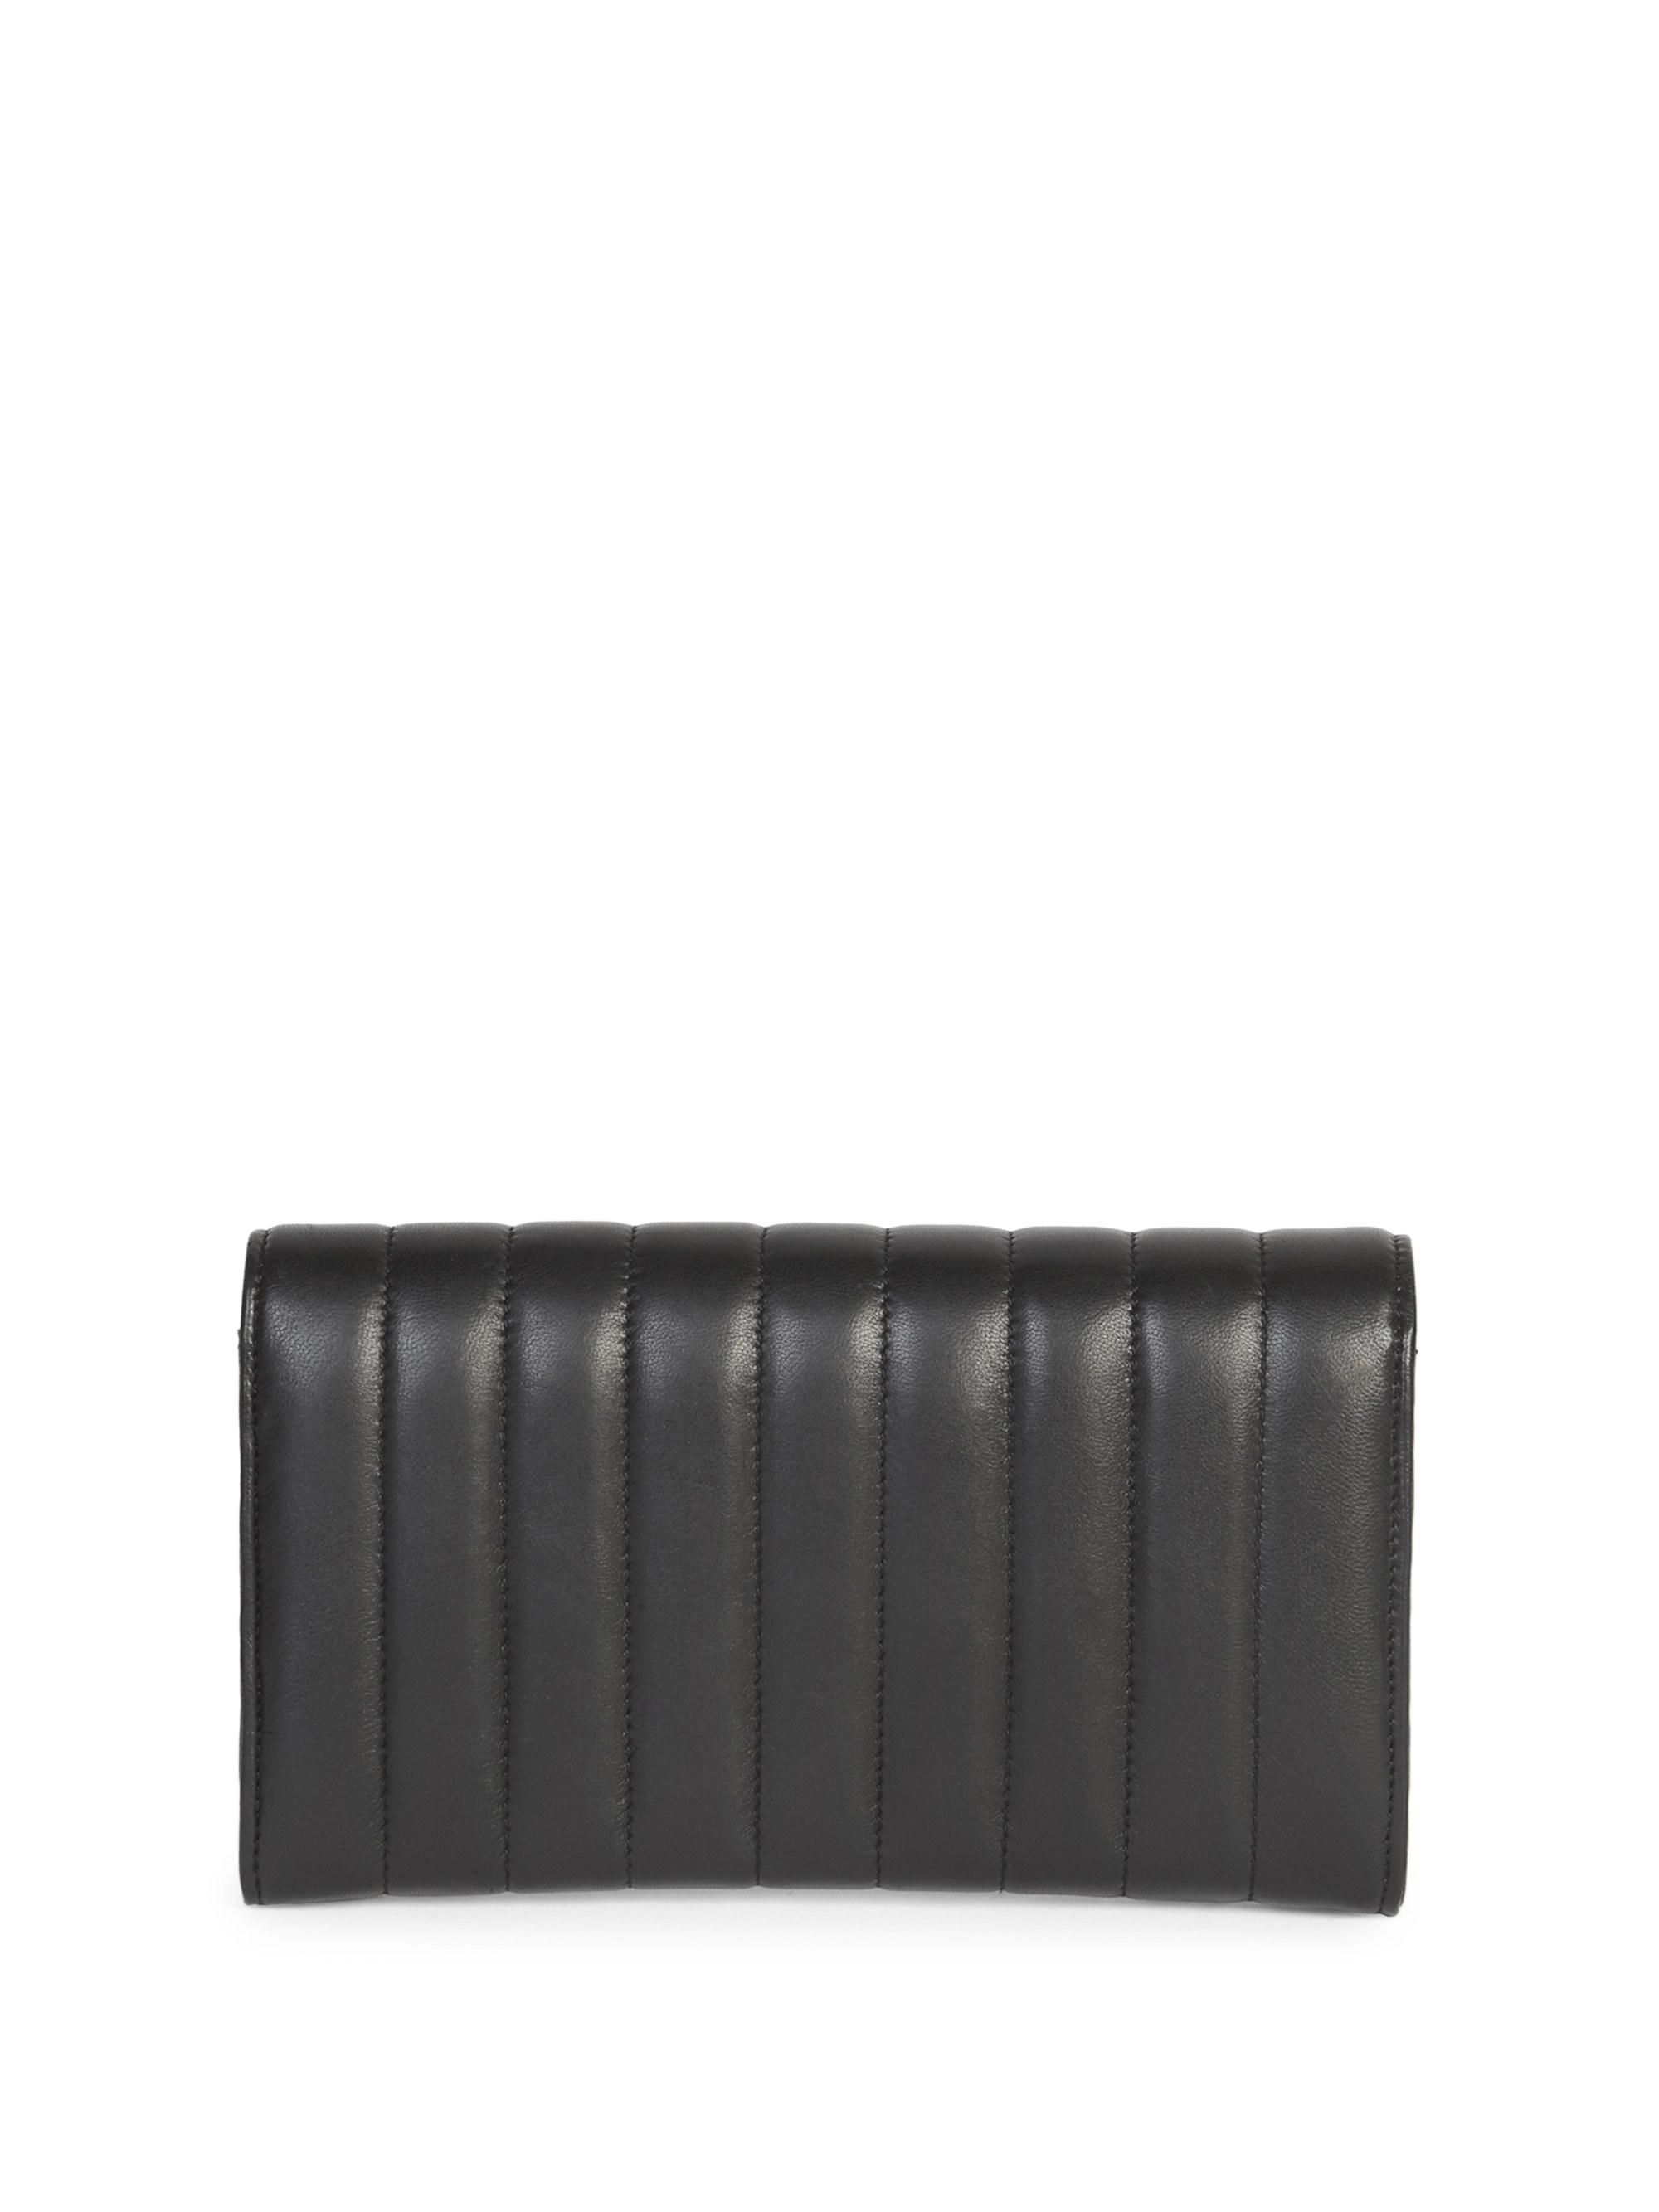 6b57a23a32809 Saint Laurent Vicky Matelasse Leather Continental Wallet in Black - Lyst